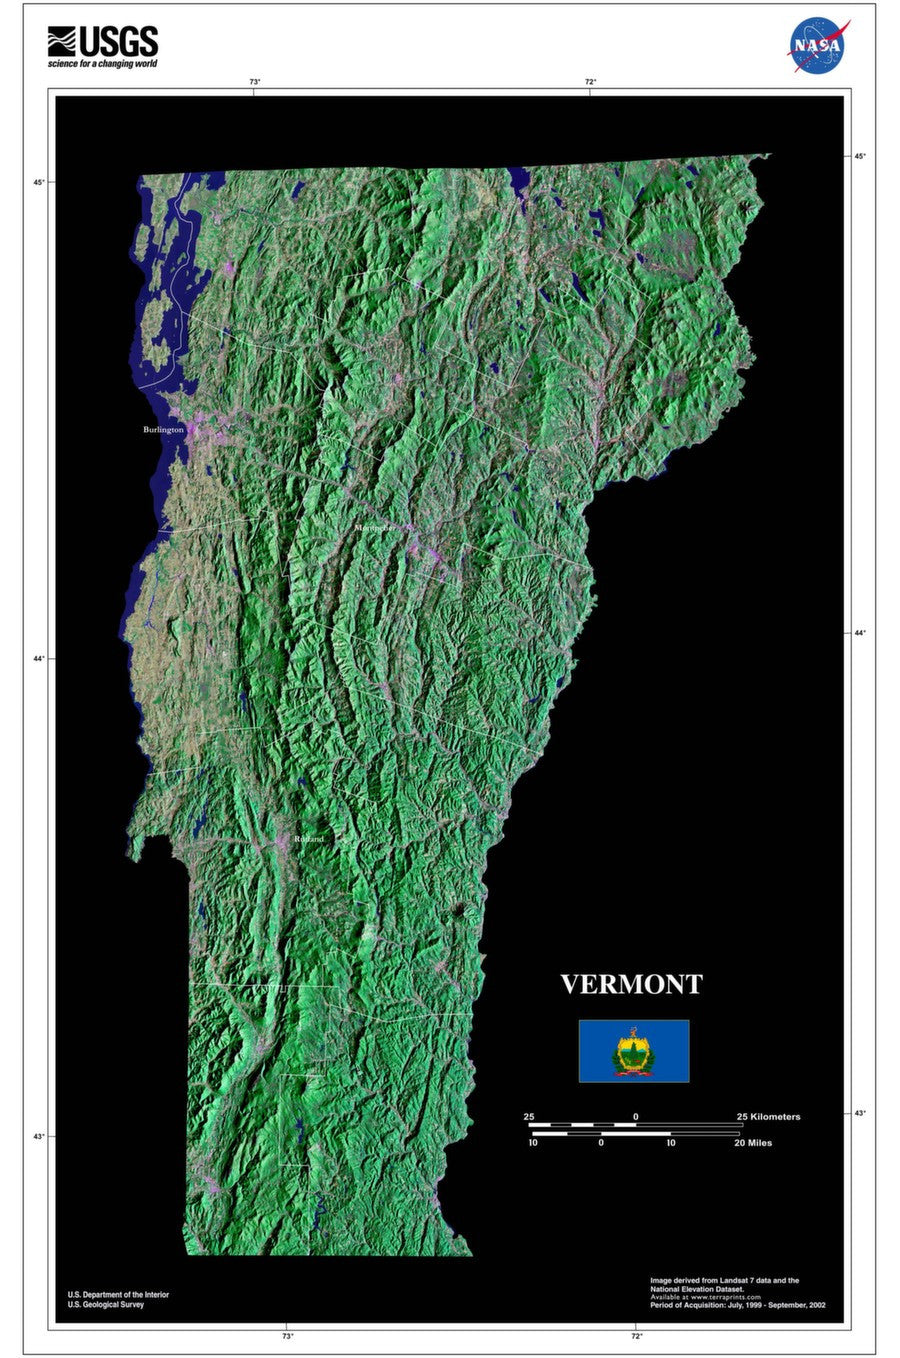 Vermont Satellite Imagery State Map Poster by TerraPrints.com. Available in multiple sizes with free shipping in the USA.